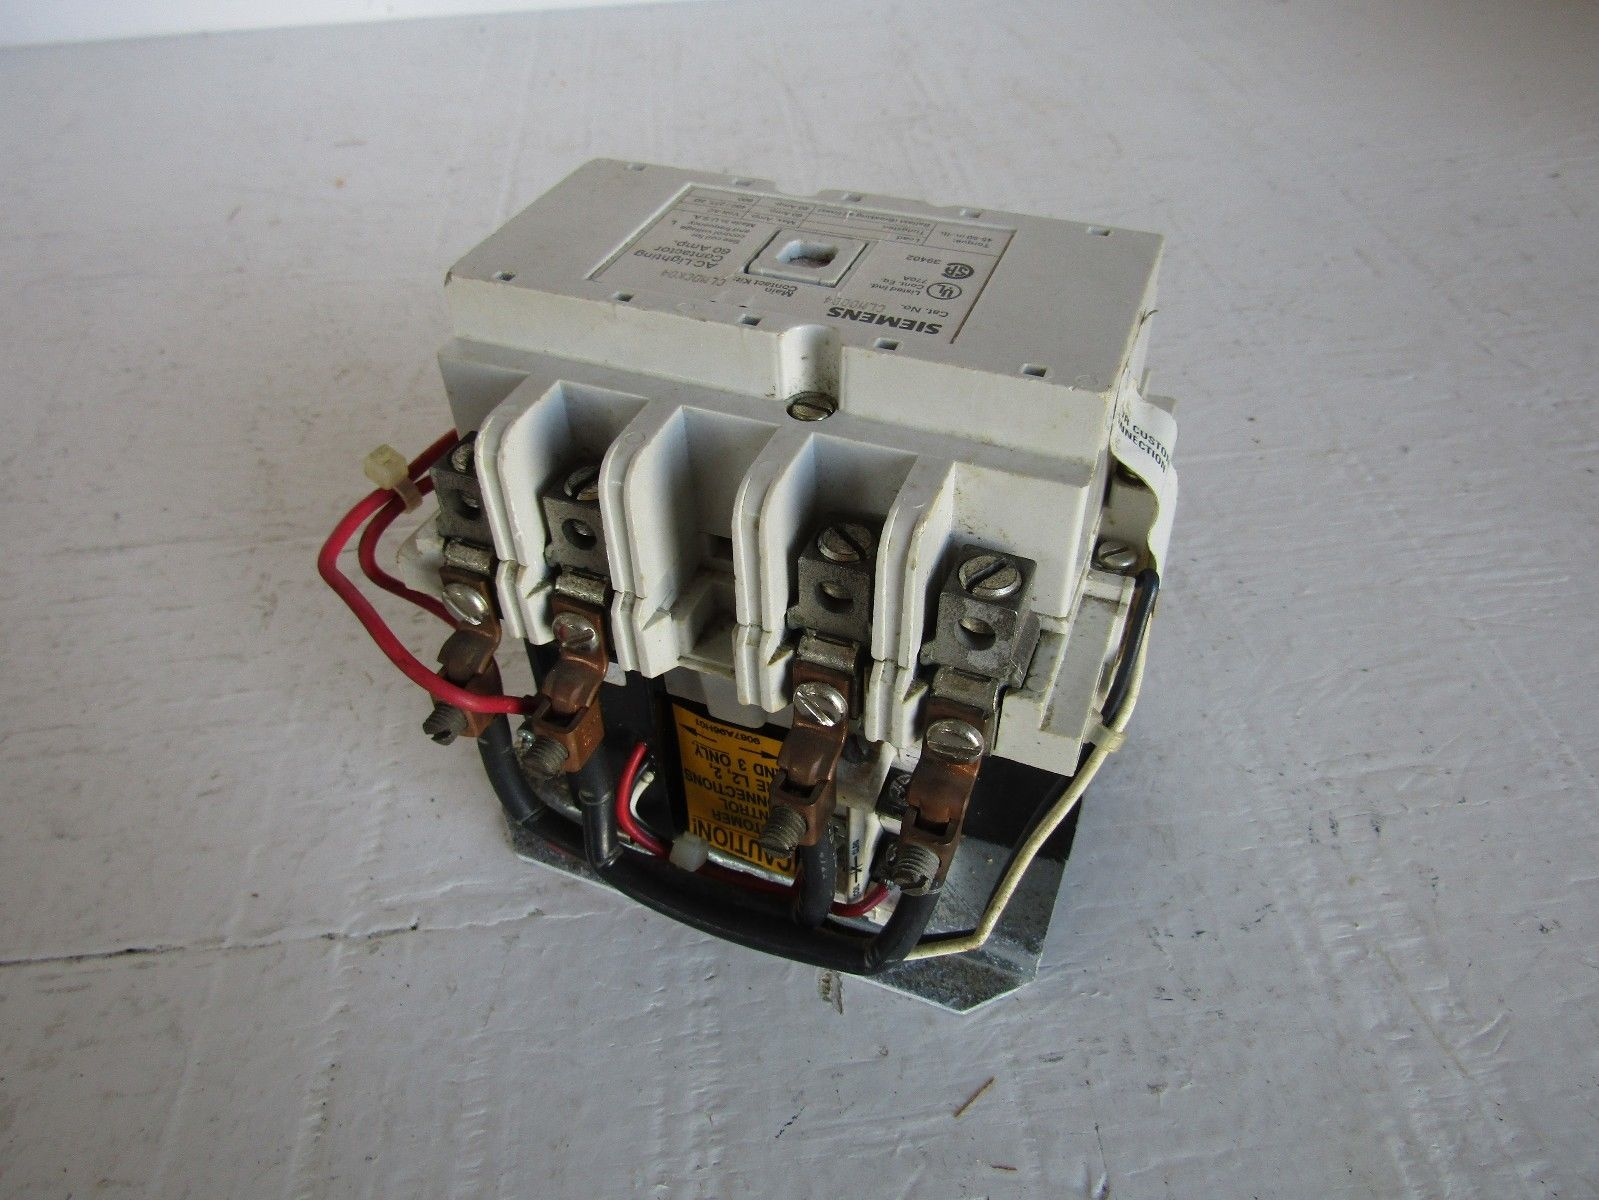 NEW SIEMENS CLM0D04 4 POLE 60A LIGHTING AND HEATING CONTACTOR 120V COIL 232036314545 3?fit=1000%2C750&ssl=1 siemens lighting contactor wiring diagram wiring diagram siemens clm lighting contactor wiring diagram at panicattacktreatment.co